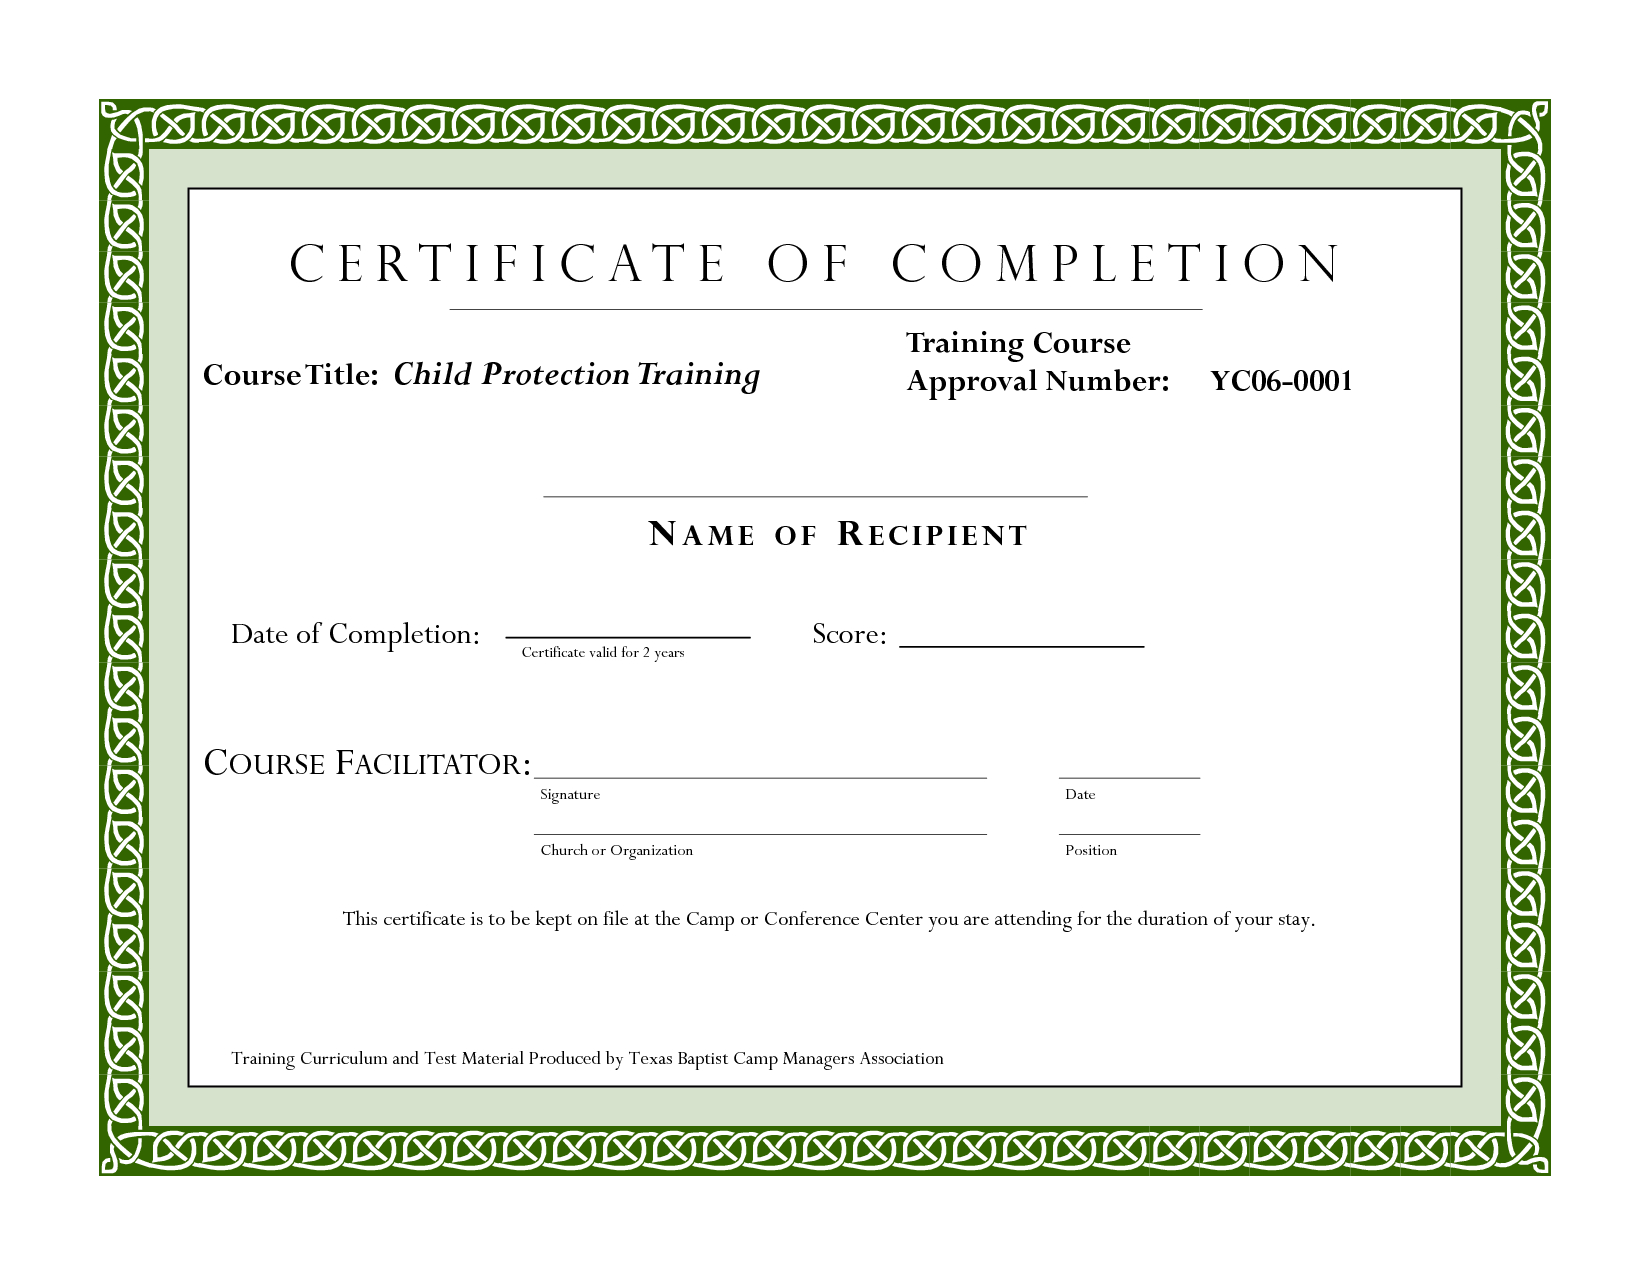 Course Completion Certificate Template   Certificate Of Intended For Training Certificate Template Word Format